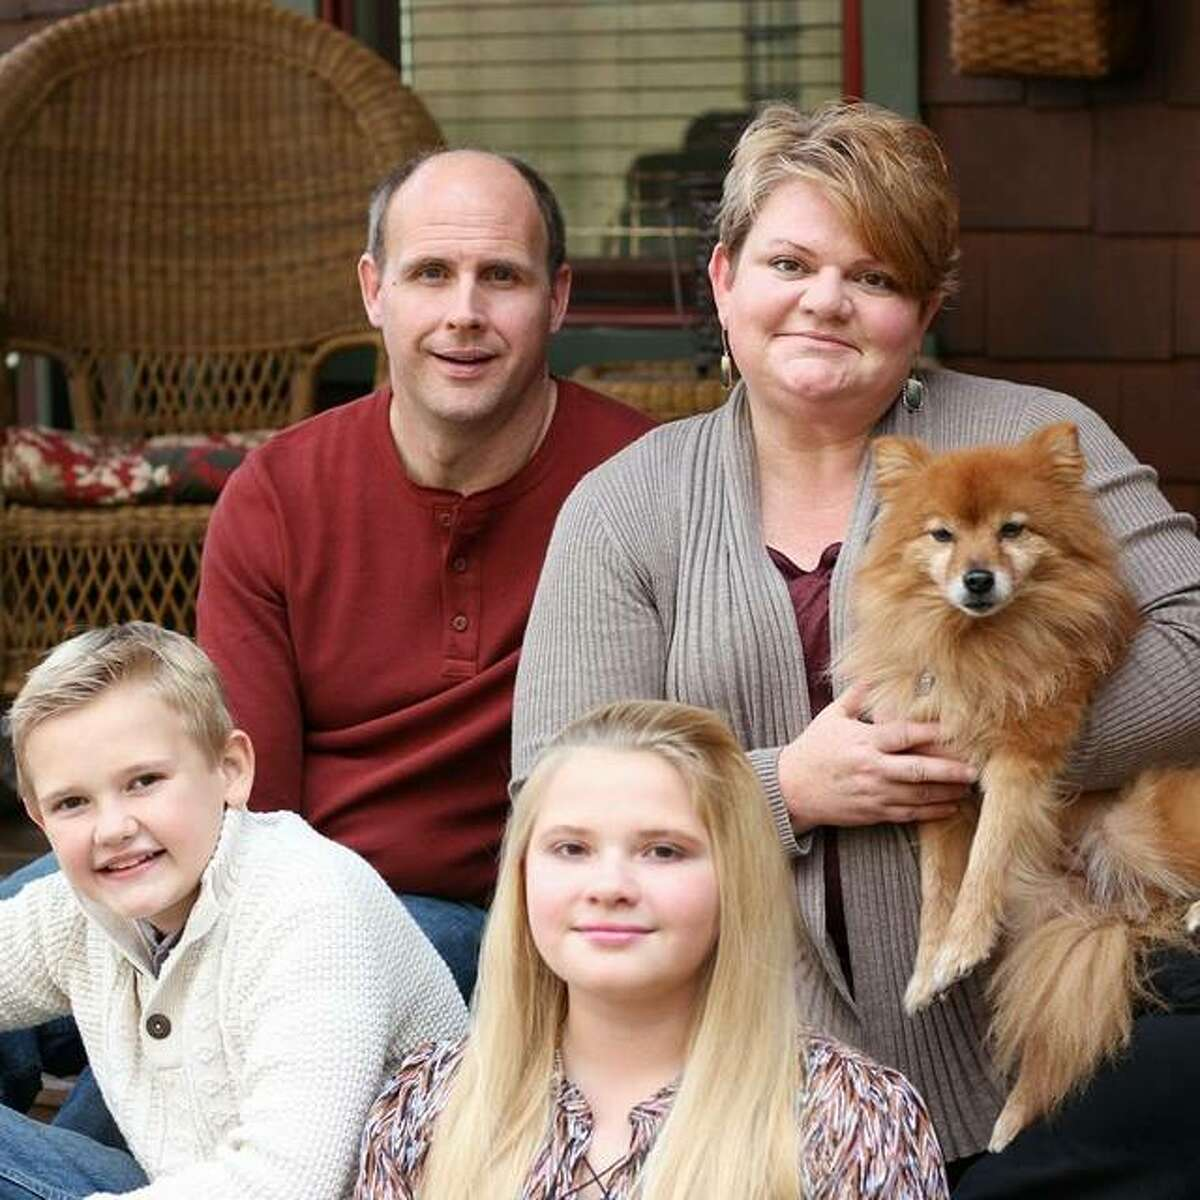 Brian Hanson with his wife, Amy, son Ben and daughter Haley, plus their dog Chewie.